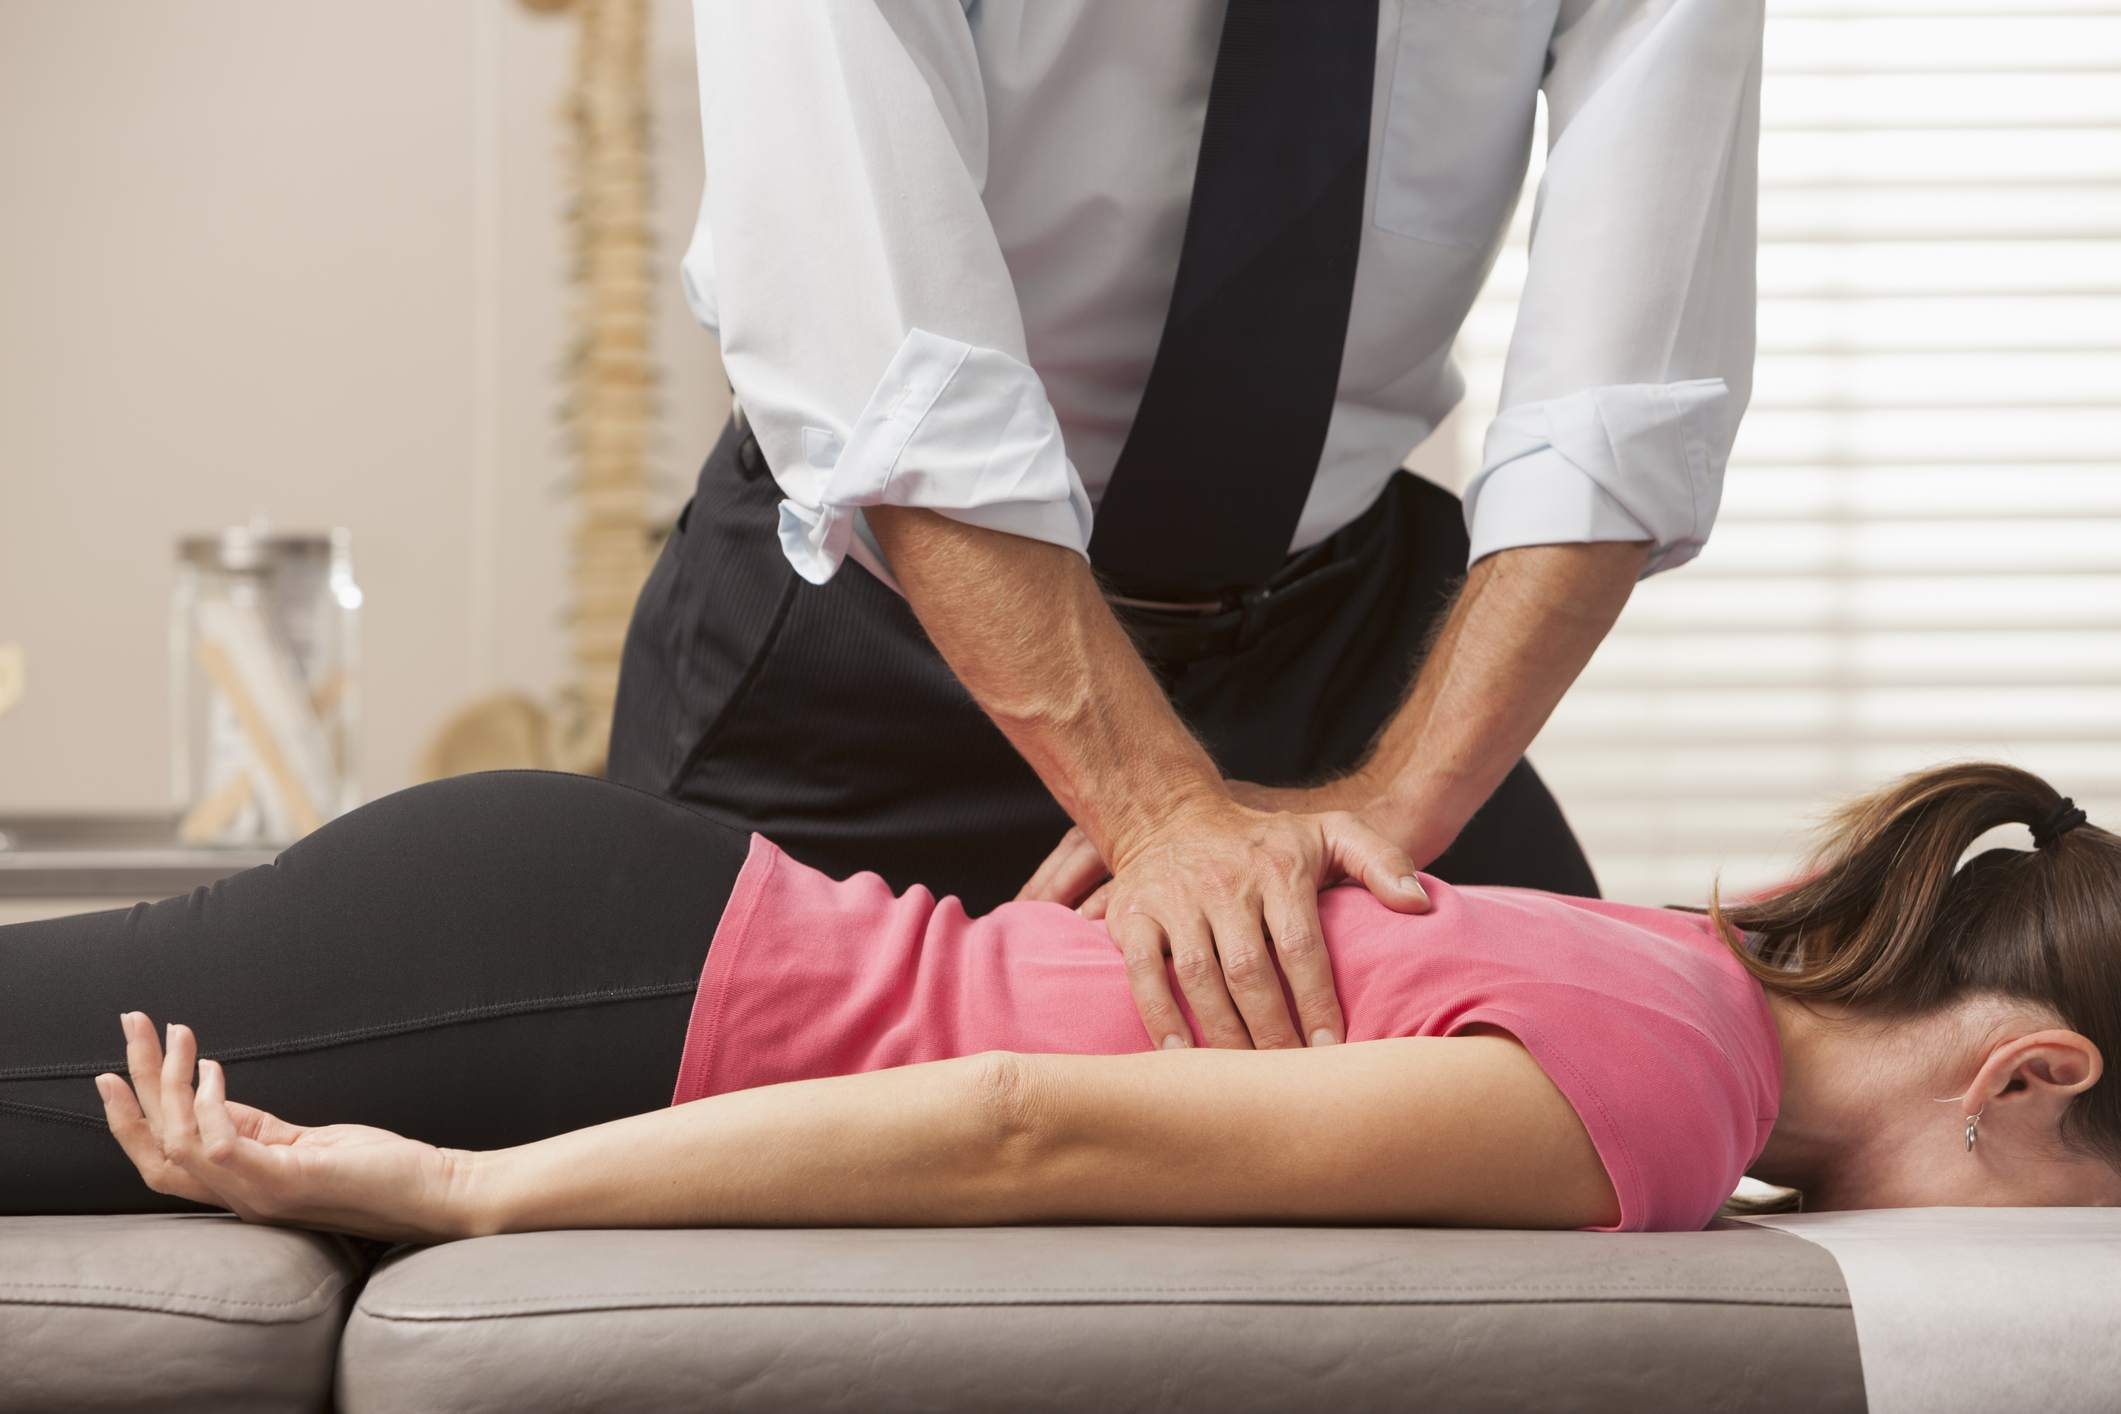 Why Are People Choosing Alternative Medicine To Treat Pains?